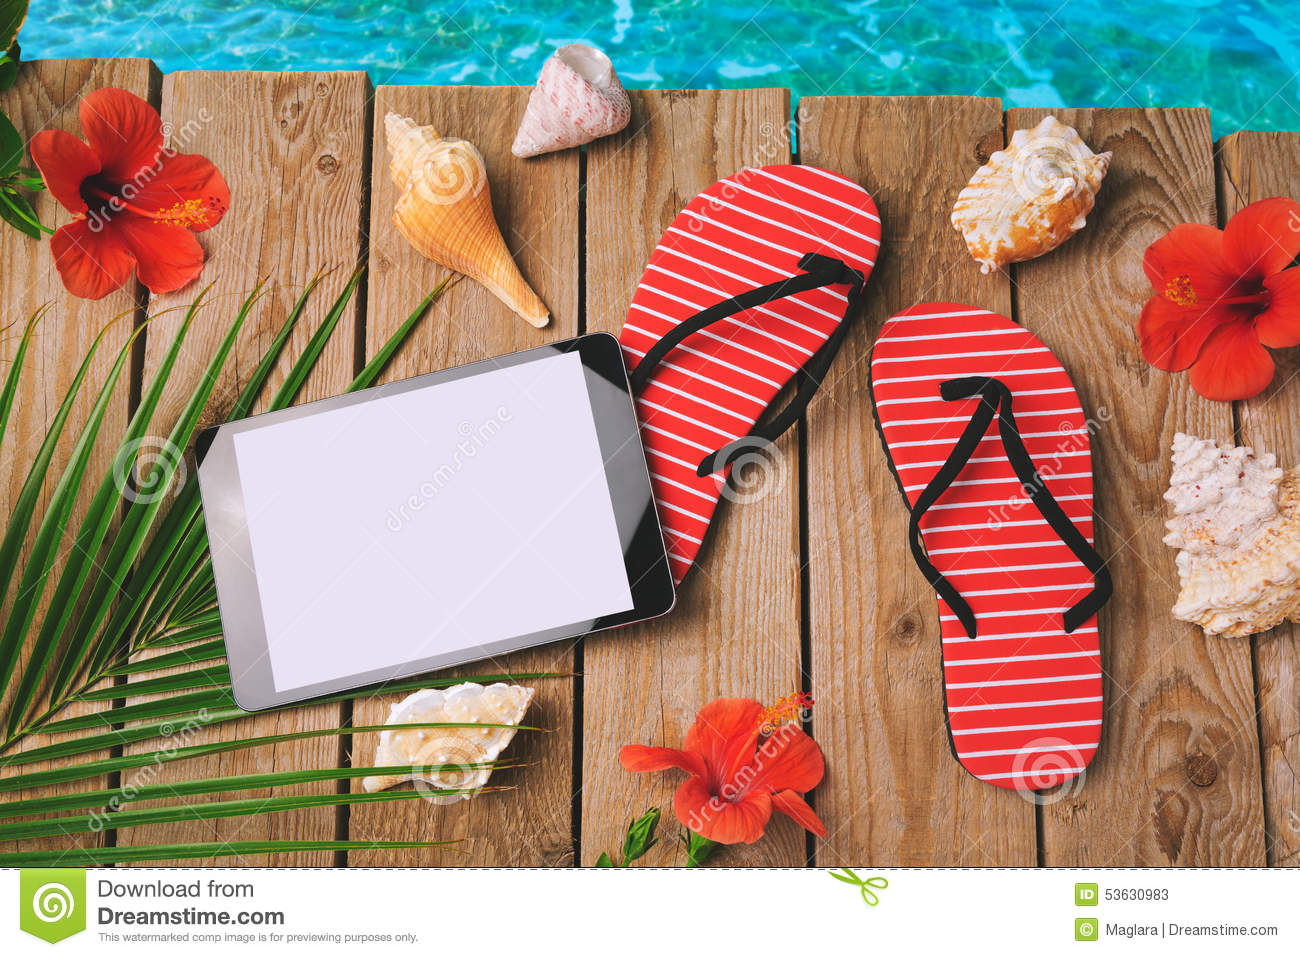 Digital tablet, flip flops and hibiscus flowers on wooden background. Summer holiday vacation concept. View from above